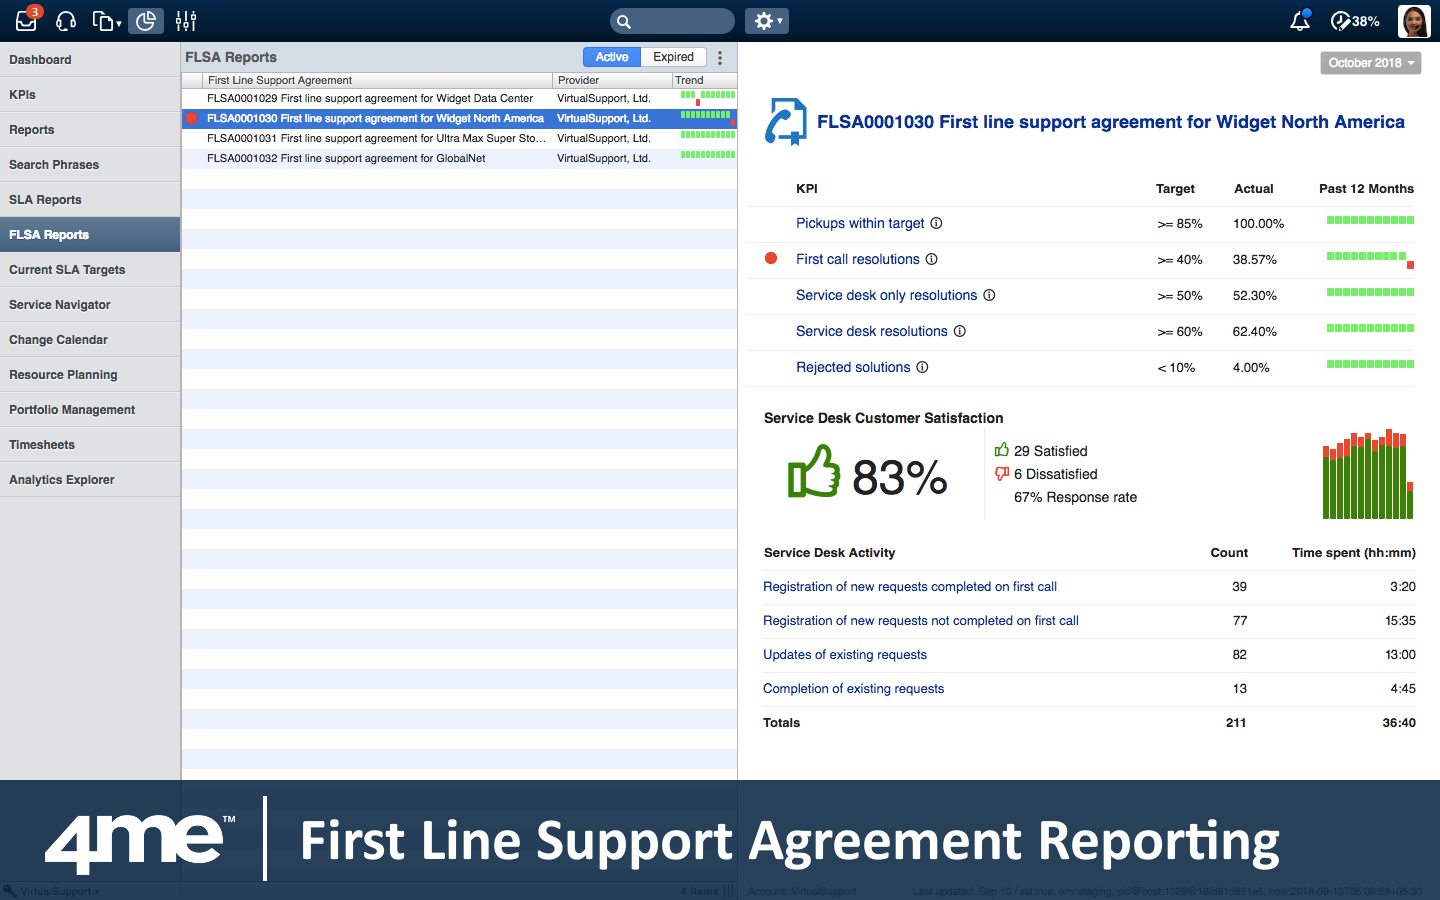 There is a special dashboard to track the performance targets for the service desk in real time.